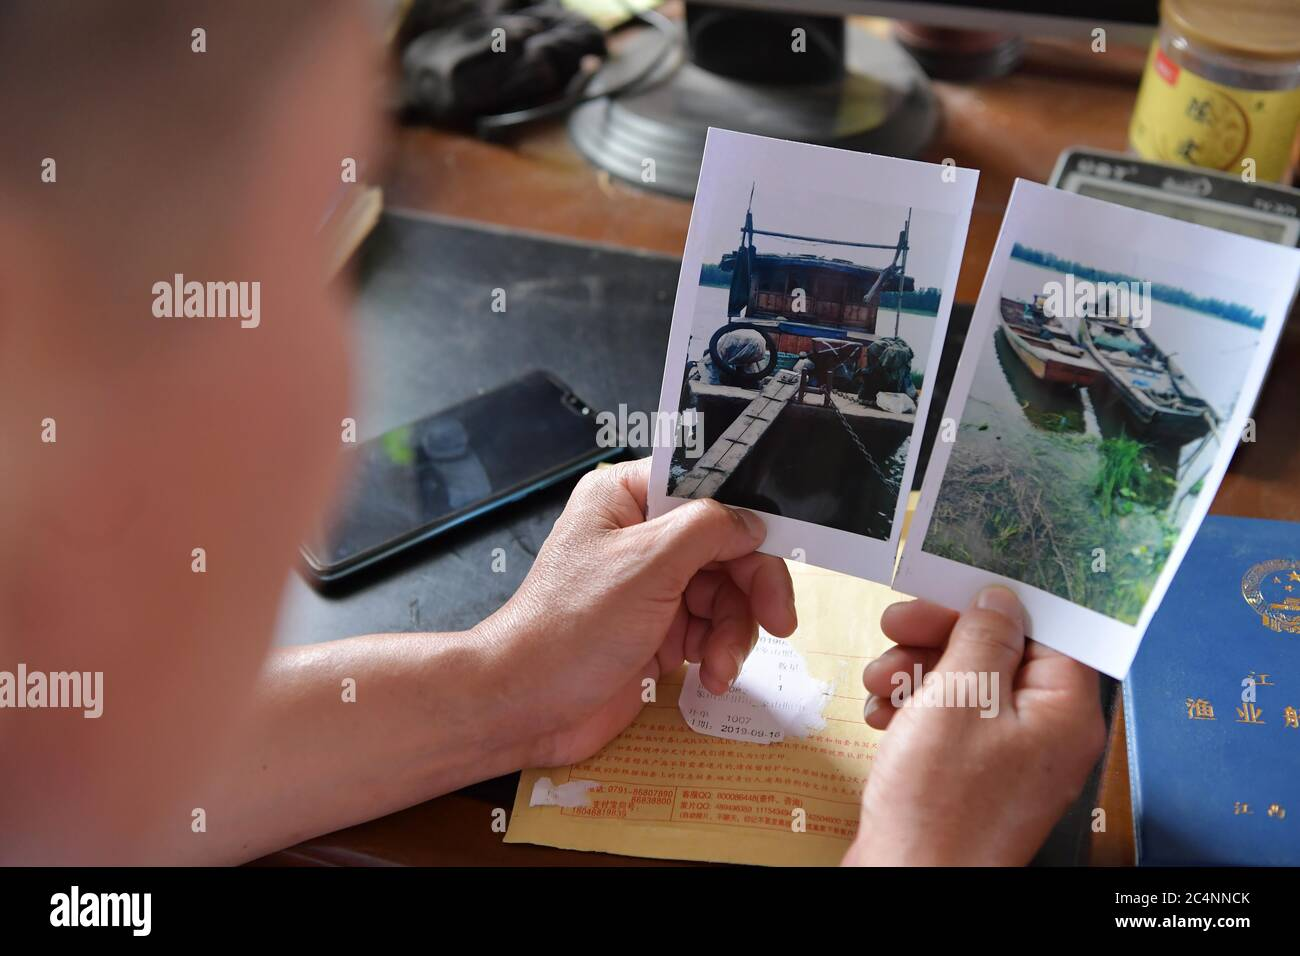 (200628) -- NANCHANG, June 28, 2020 (Xinhua) -- Wu Huashan displays photos of the fishing boats he once owned in Xiangshan Township, Nanchang, east China's Jiangxi Province, June 5, 2020.  Having learned fishing at an early age with his parents, Wu was a skilled fisherman and was head of a local fishery association. In late 2019, he bade farewell to his boats and started a crayfish business. China began a 10-year fishing moratorium from the beginning of this year in 332 conservation areas in the Yangtze River basin, which will be expanded to all the natural waterways of the country's longest r Stock Photo